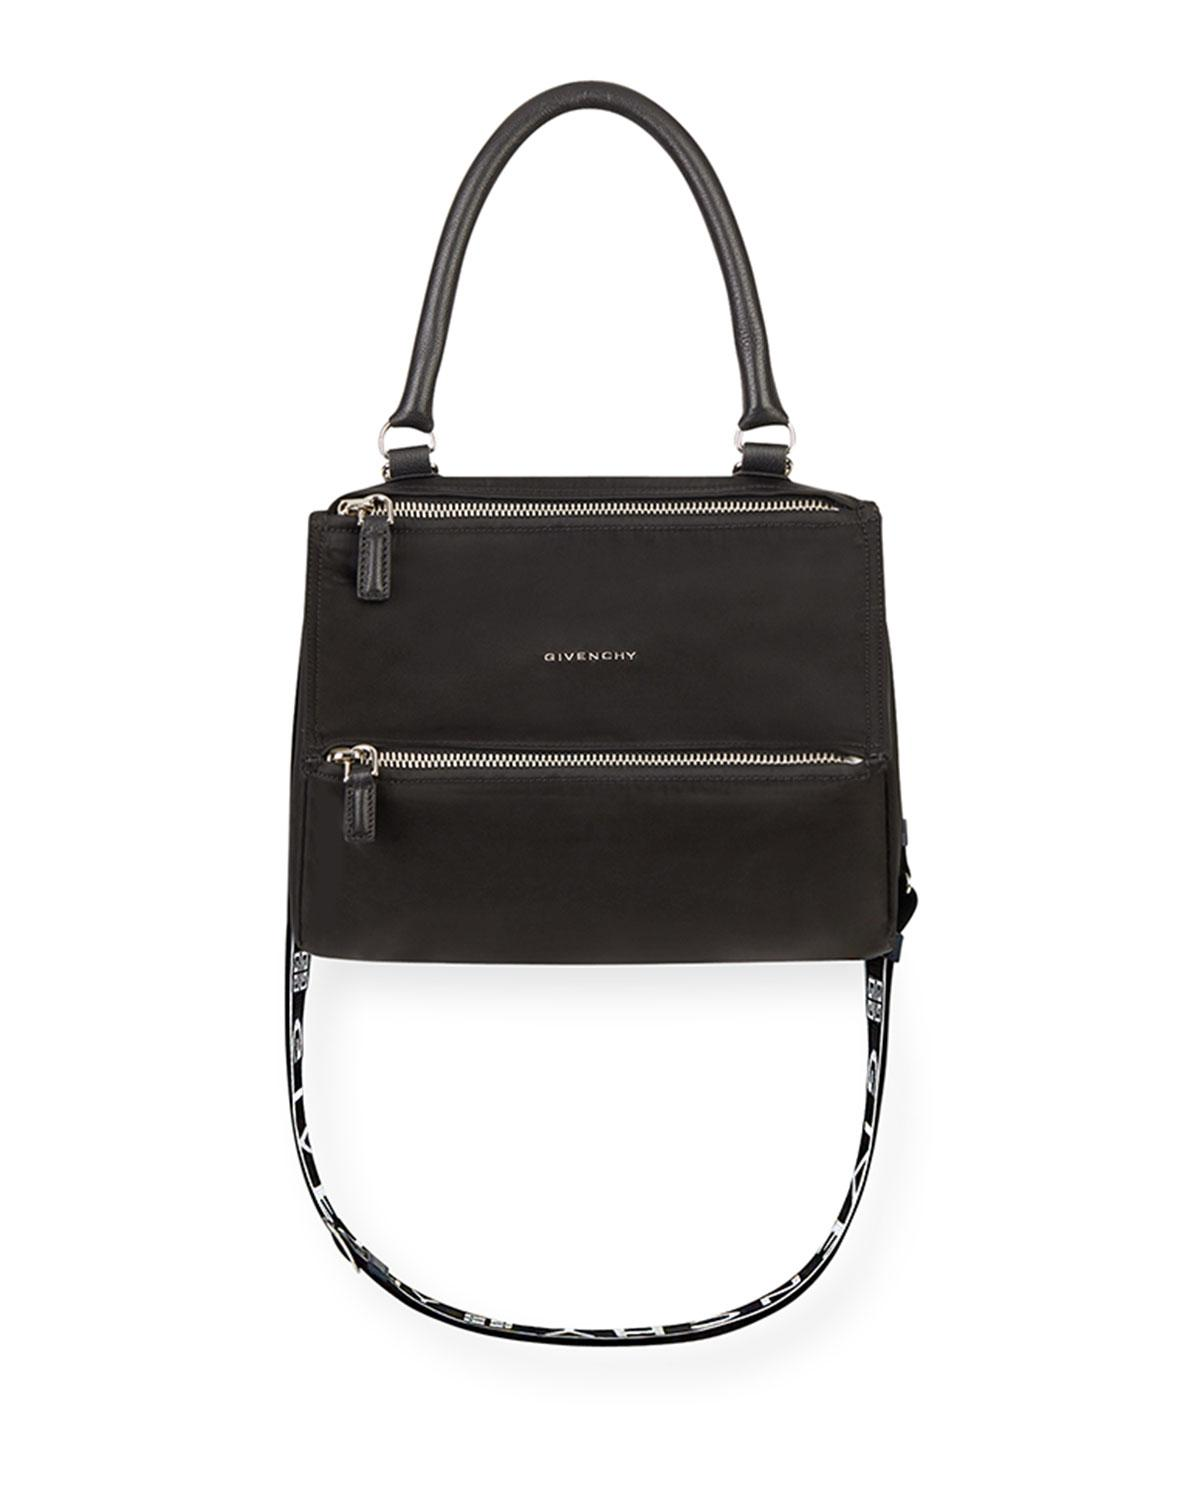 a0d878115a01 Givenchy - Black Pandora Small Fabric Satchel Bag With Logo Strap - Lyst.  View fullscreen